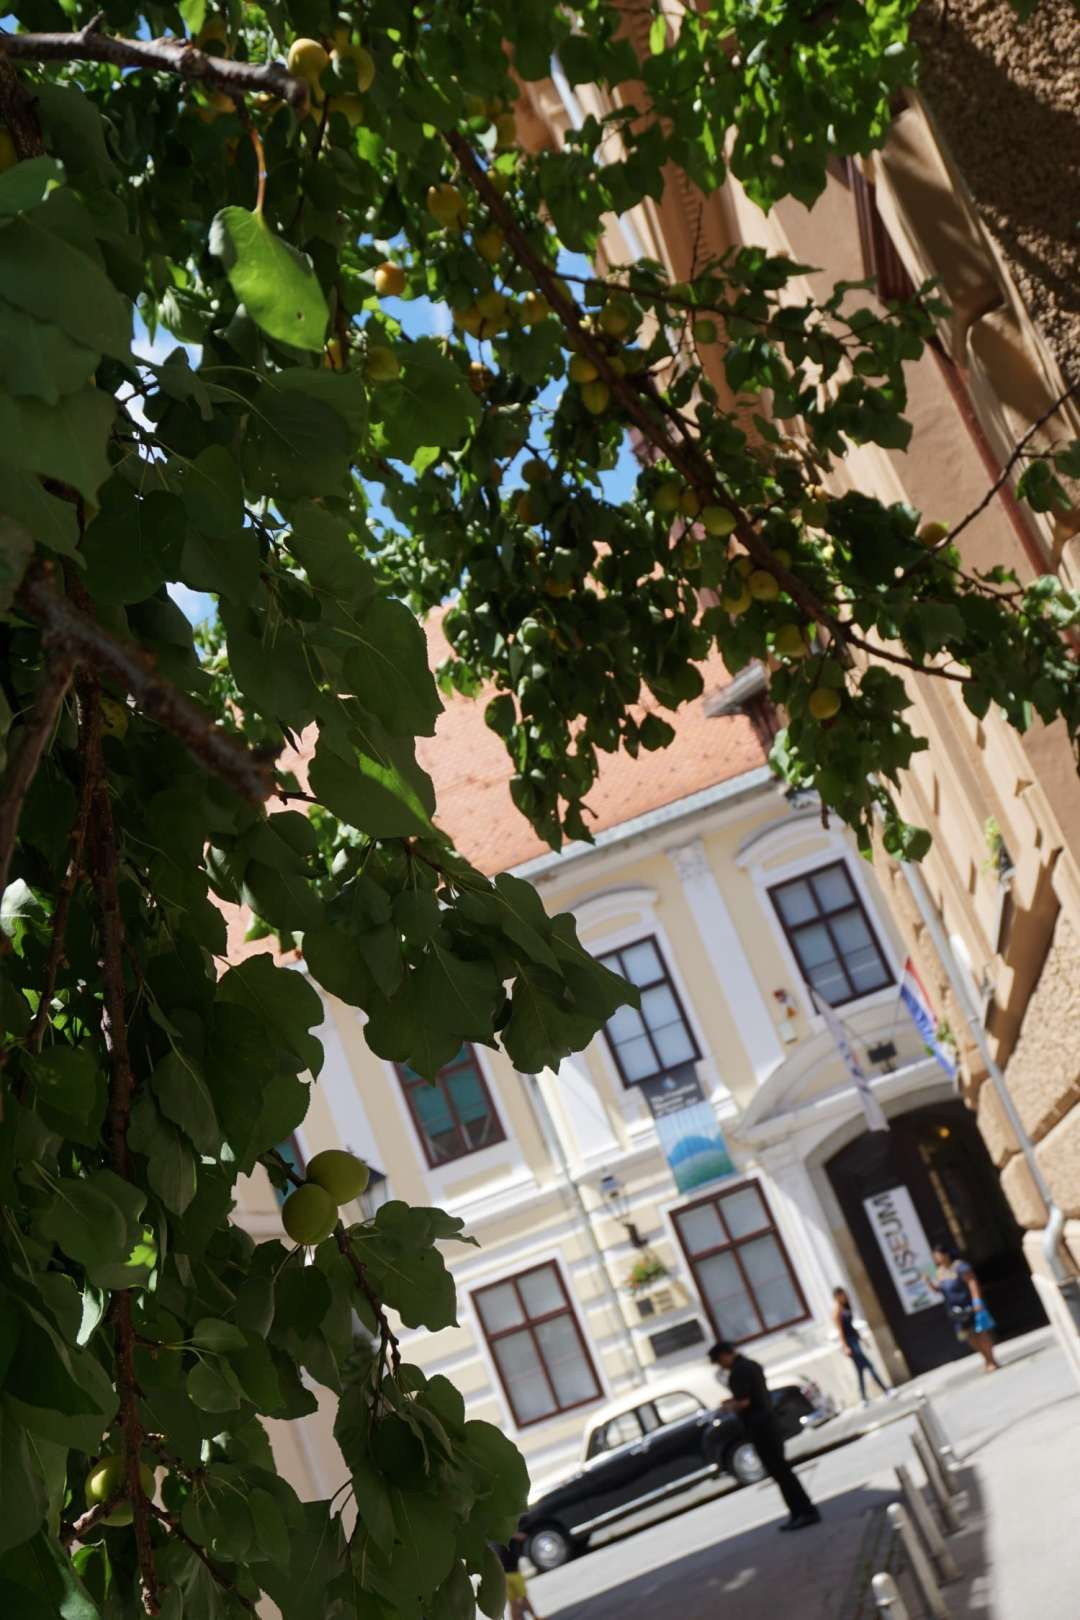 A peek at the Croatian Museum of Naive Art from across the road. Read the full Zagreb guide.